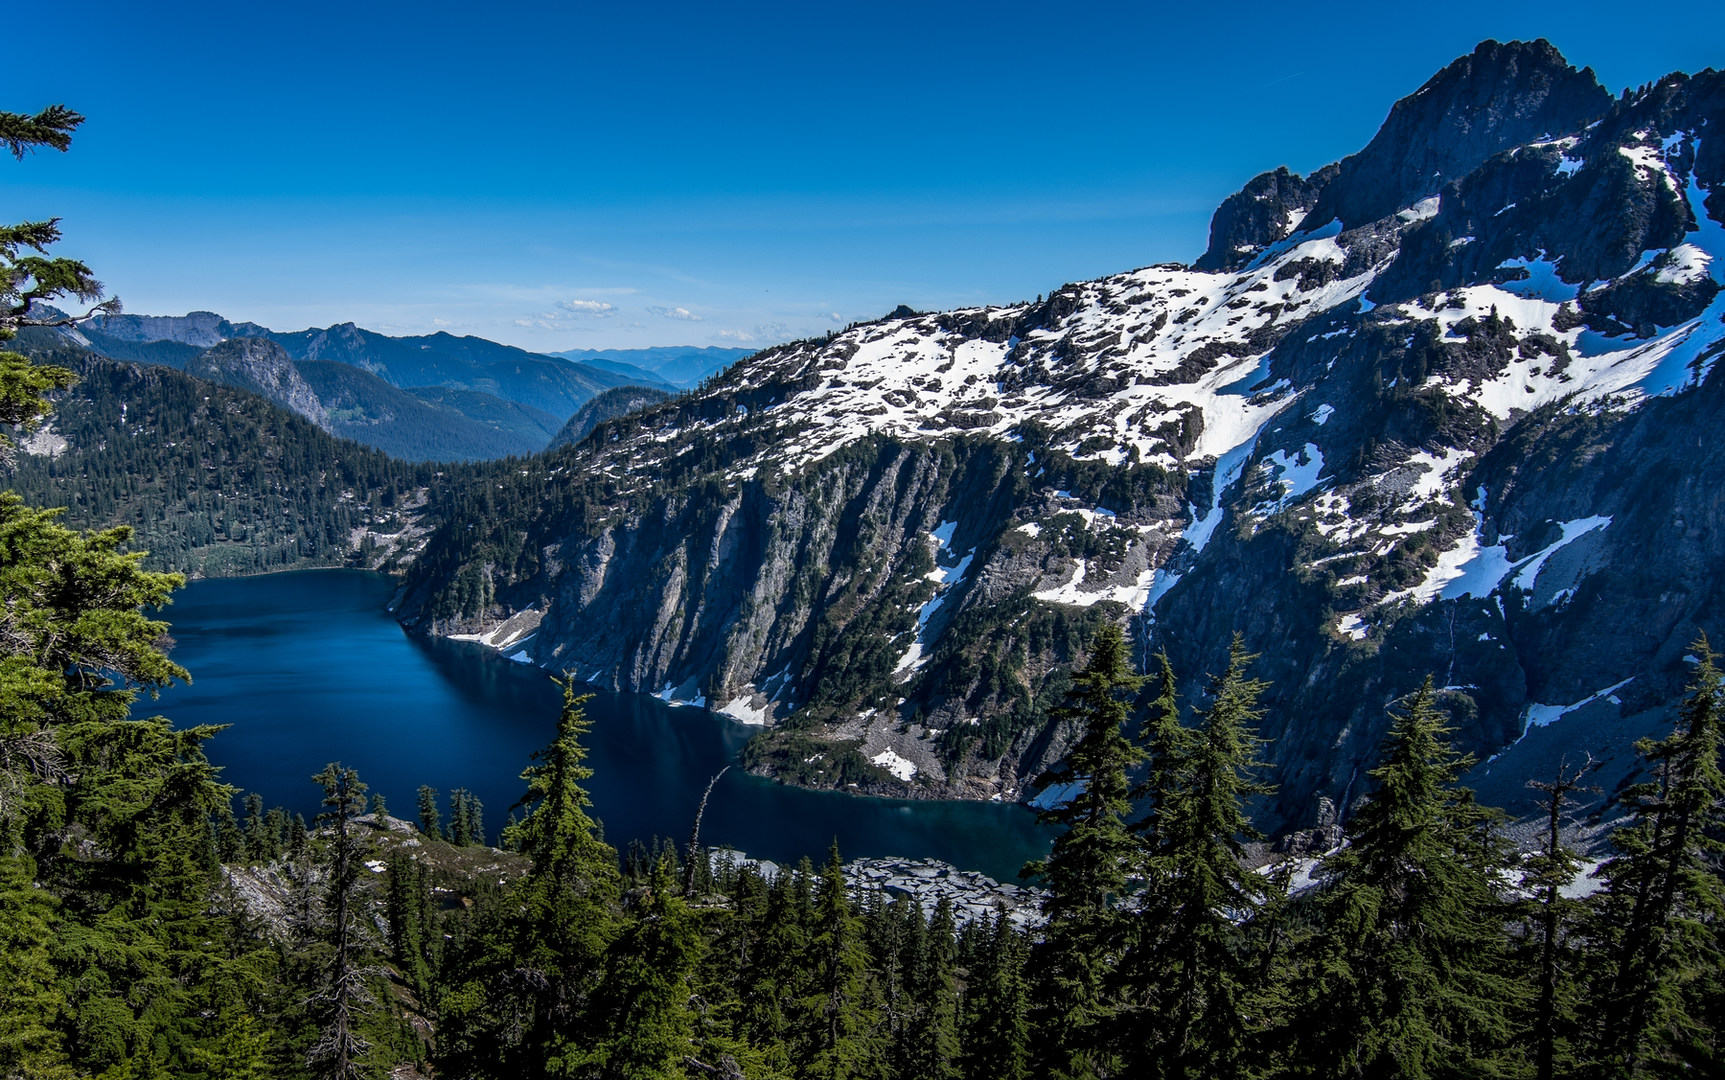 5 amazing hikes in the alpine lakes wilderness outdoor project